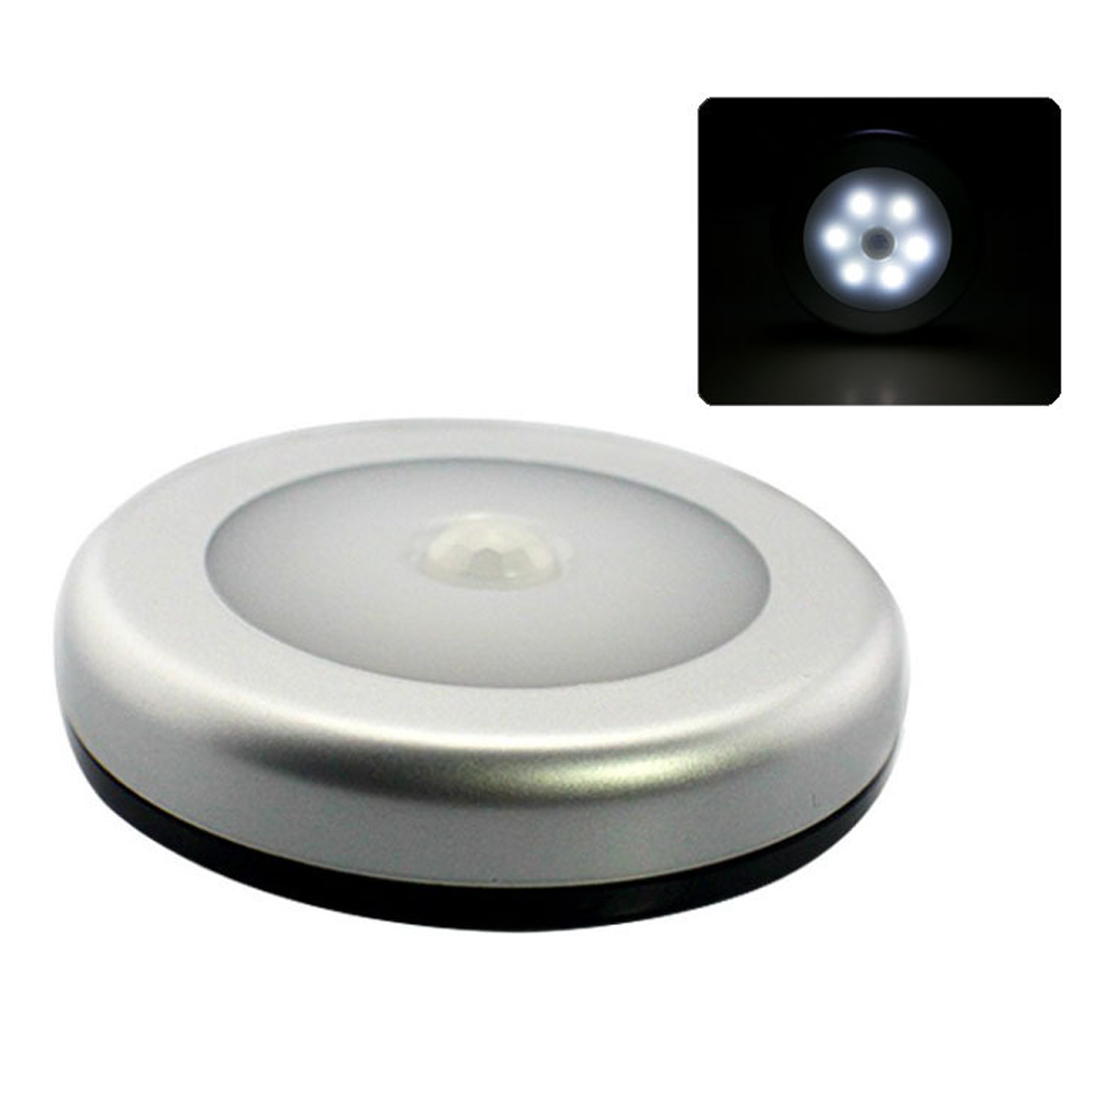 Body Motion Sensor 6 LED Wall Lamp Night Light Induction Lamp Corridor Cabinet LED Search Lamp Home Electronic Accessorie